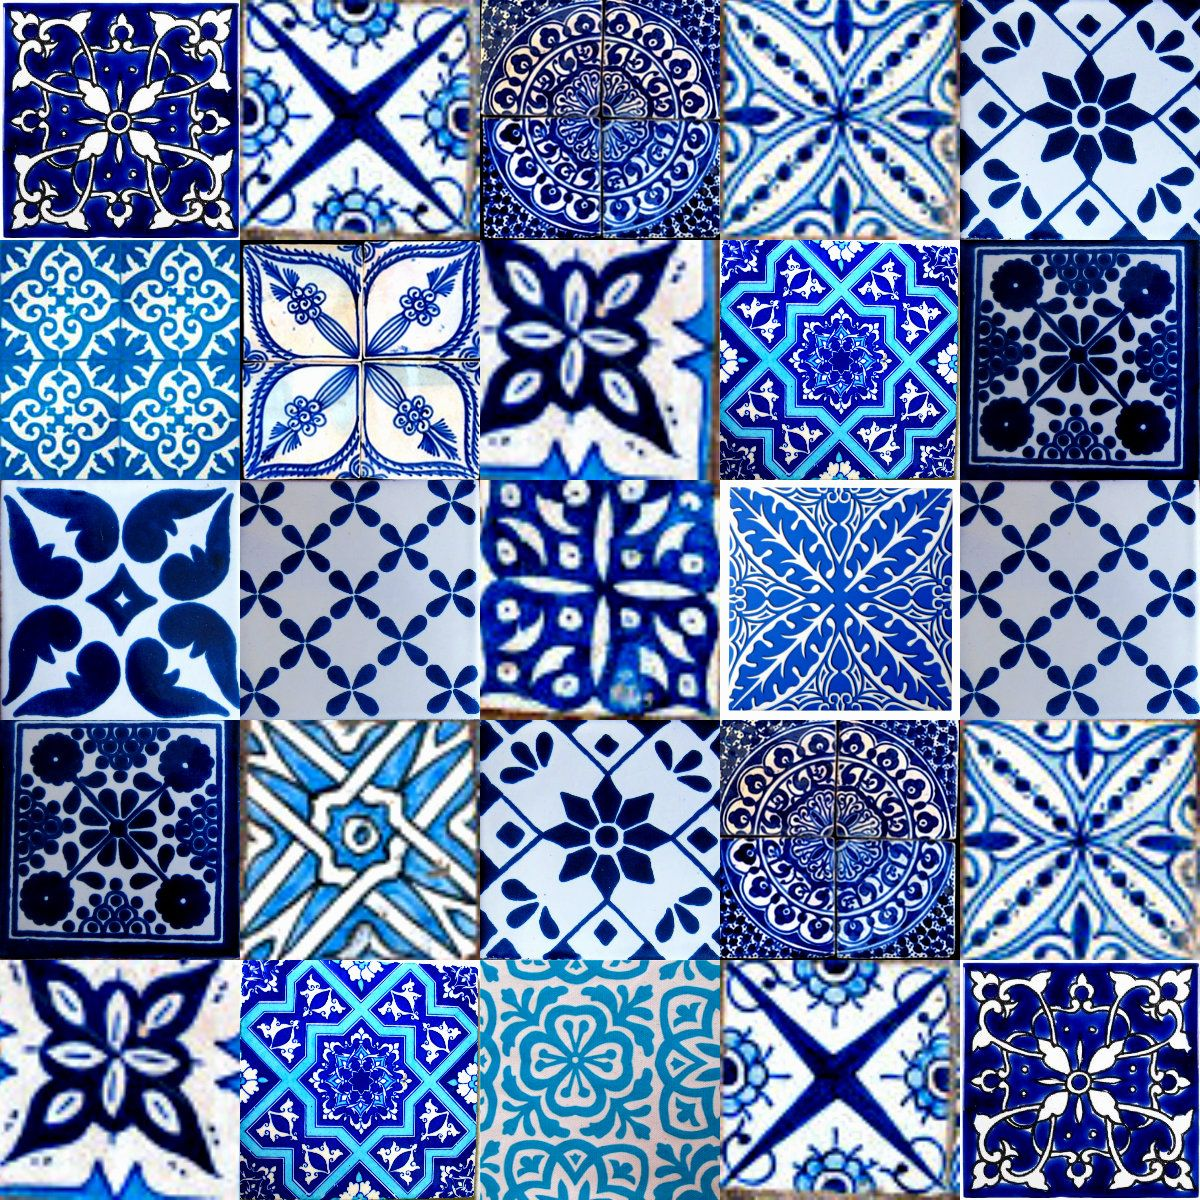 marrakesh moroccan tiles blue | random | Pinterest | Marrakesh ...